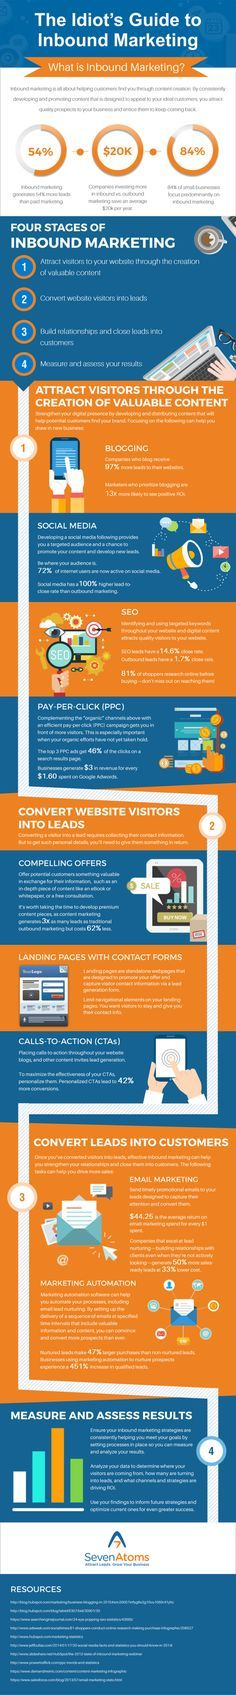 The Idiot's Guide to Inbound Marketing: 4 Steps to a Successful Campaign #Infographic